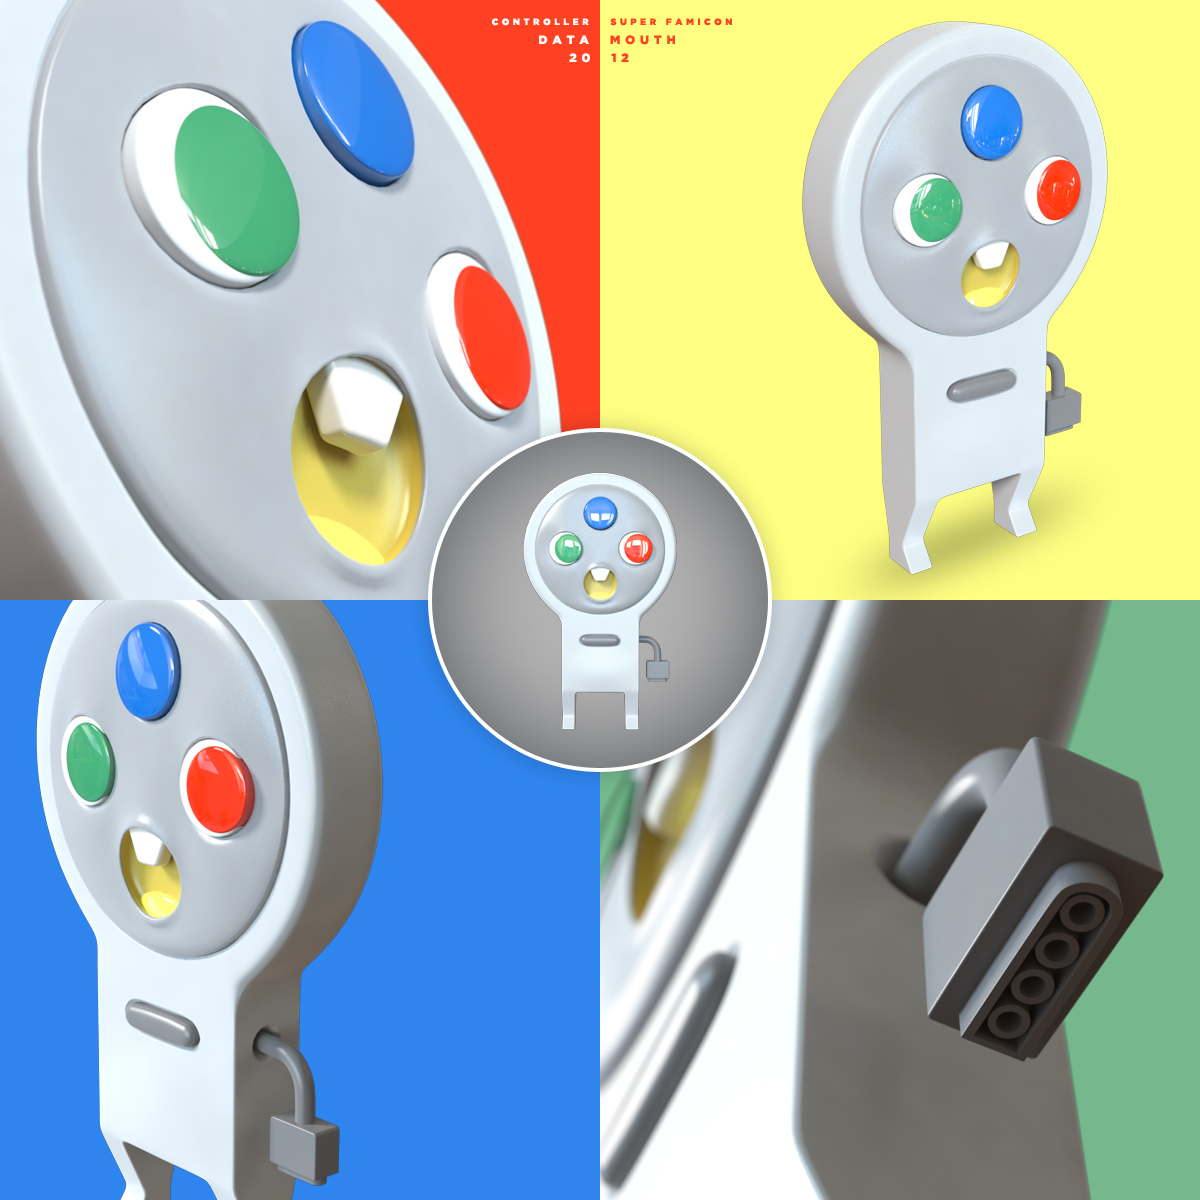 Controllers - Super Famicon 3D